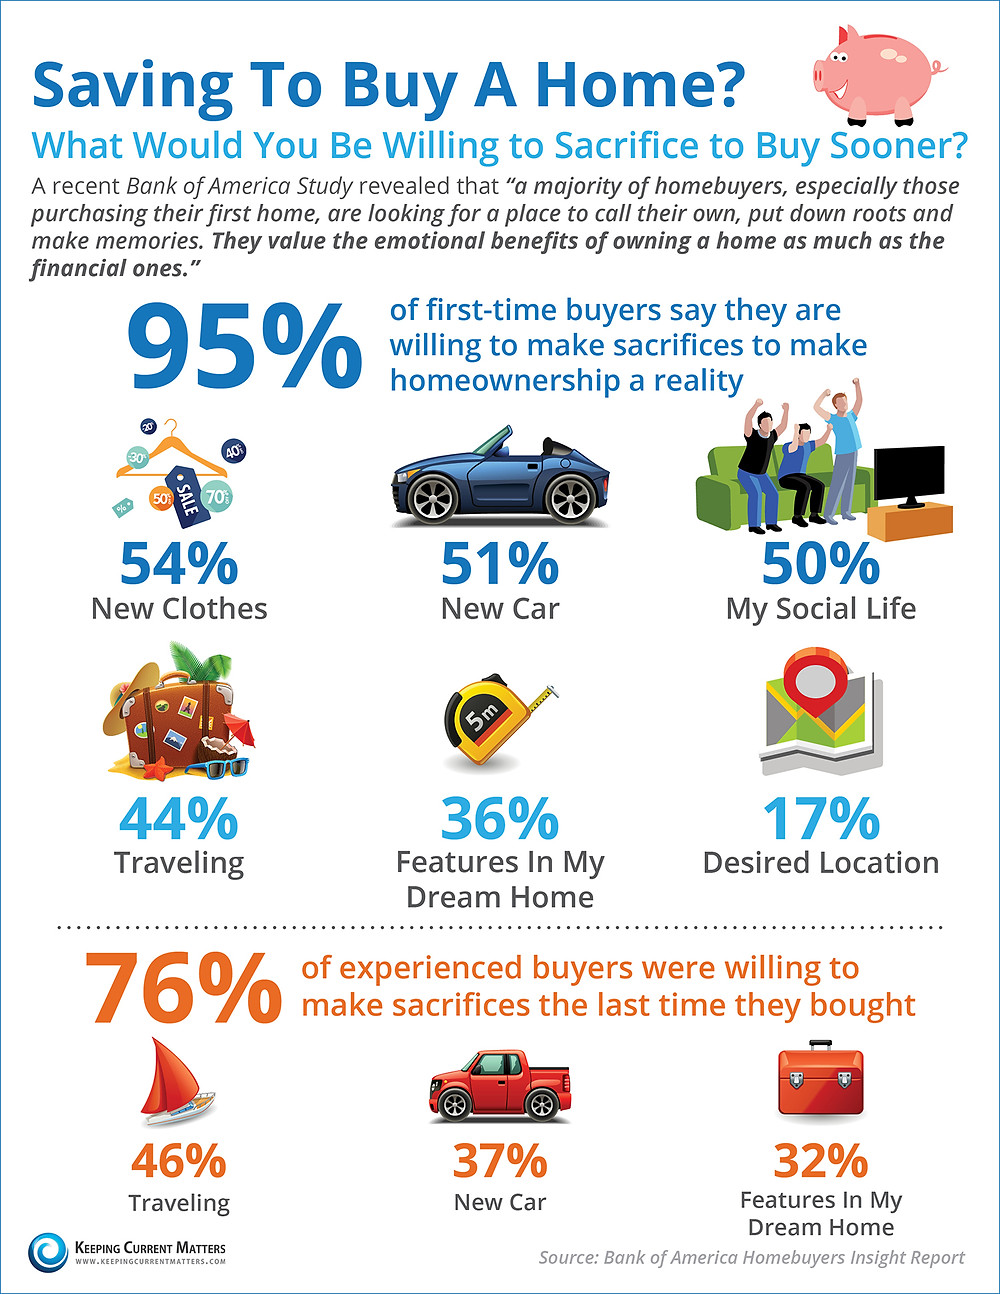 Saving To Buy A Home? What Would You Sacrifice? [INFOGRAPHIC] | Keeping Current Matters